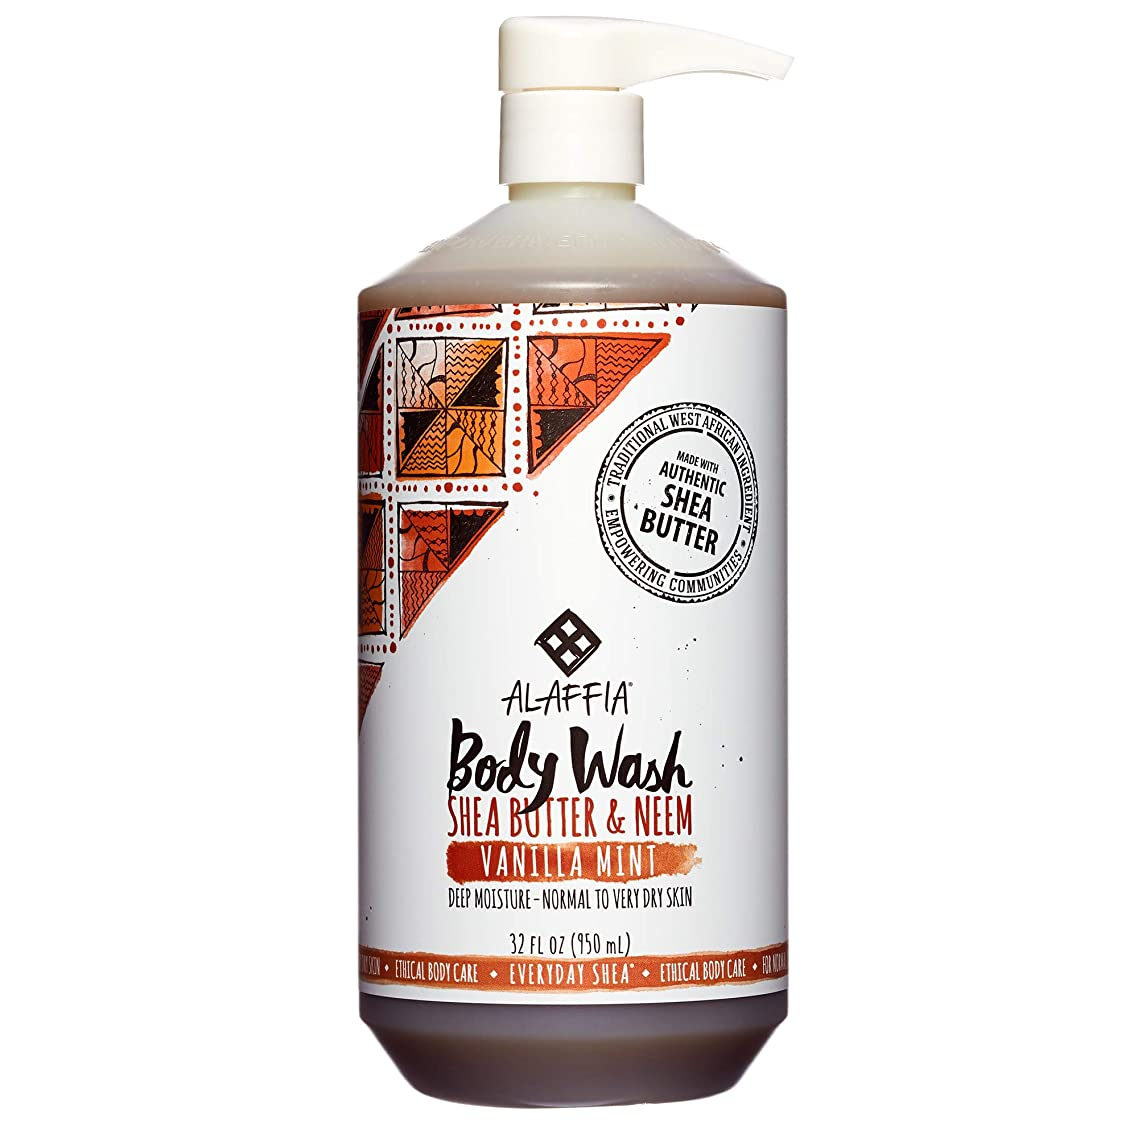 Alaffia - Everyday Shea Body Wash, Naturally Helps Moisturize and Cleanse without Stripping Natural Oils with Shea Butter, Neem, and Coconut Oil, Fair Trade, Vanilla Mint, 32 Ounces (FFP)